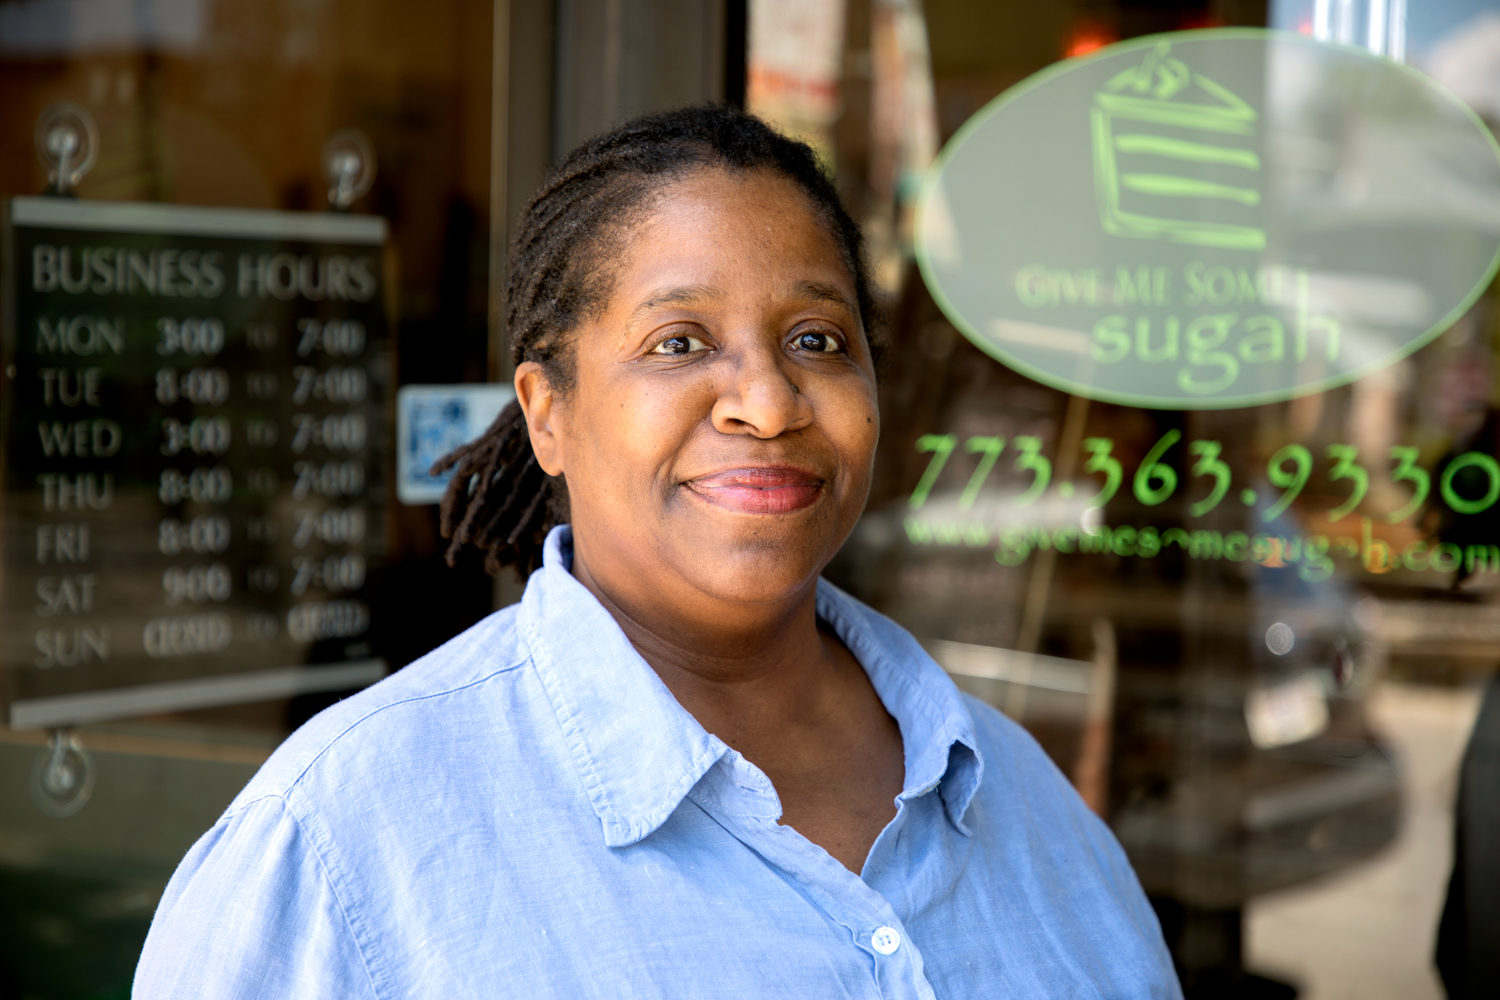 Lenore Lindsay is the owner of Give Me Some Sugah Cafe at 2234 East 71st Street. She said the downzoning strategy could be a good thing. (Andrew Gill/WBEZ)